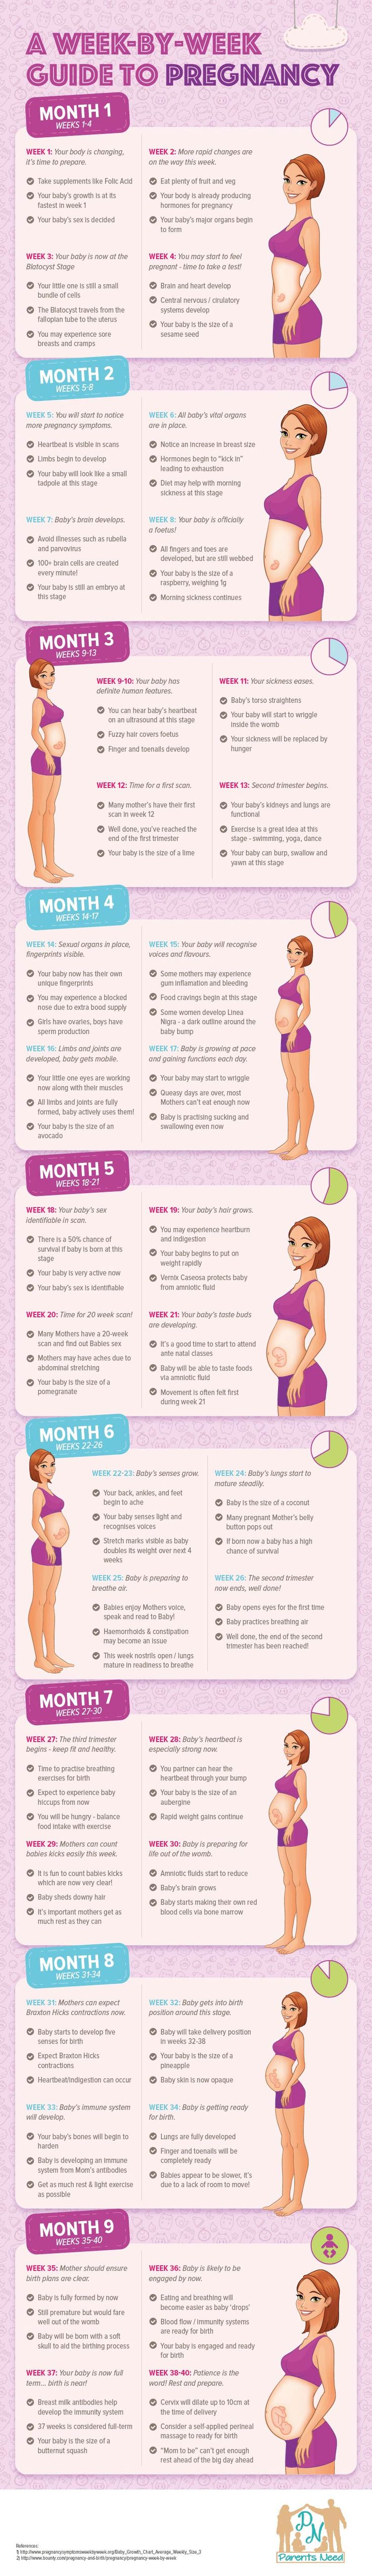 7 best pregnancy images on pinterest pregnancy breast feeding and